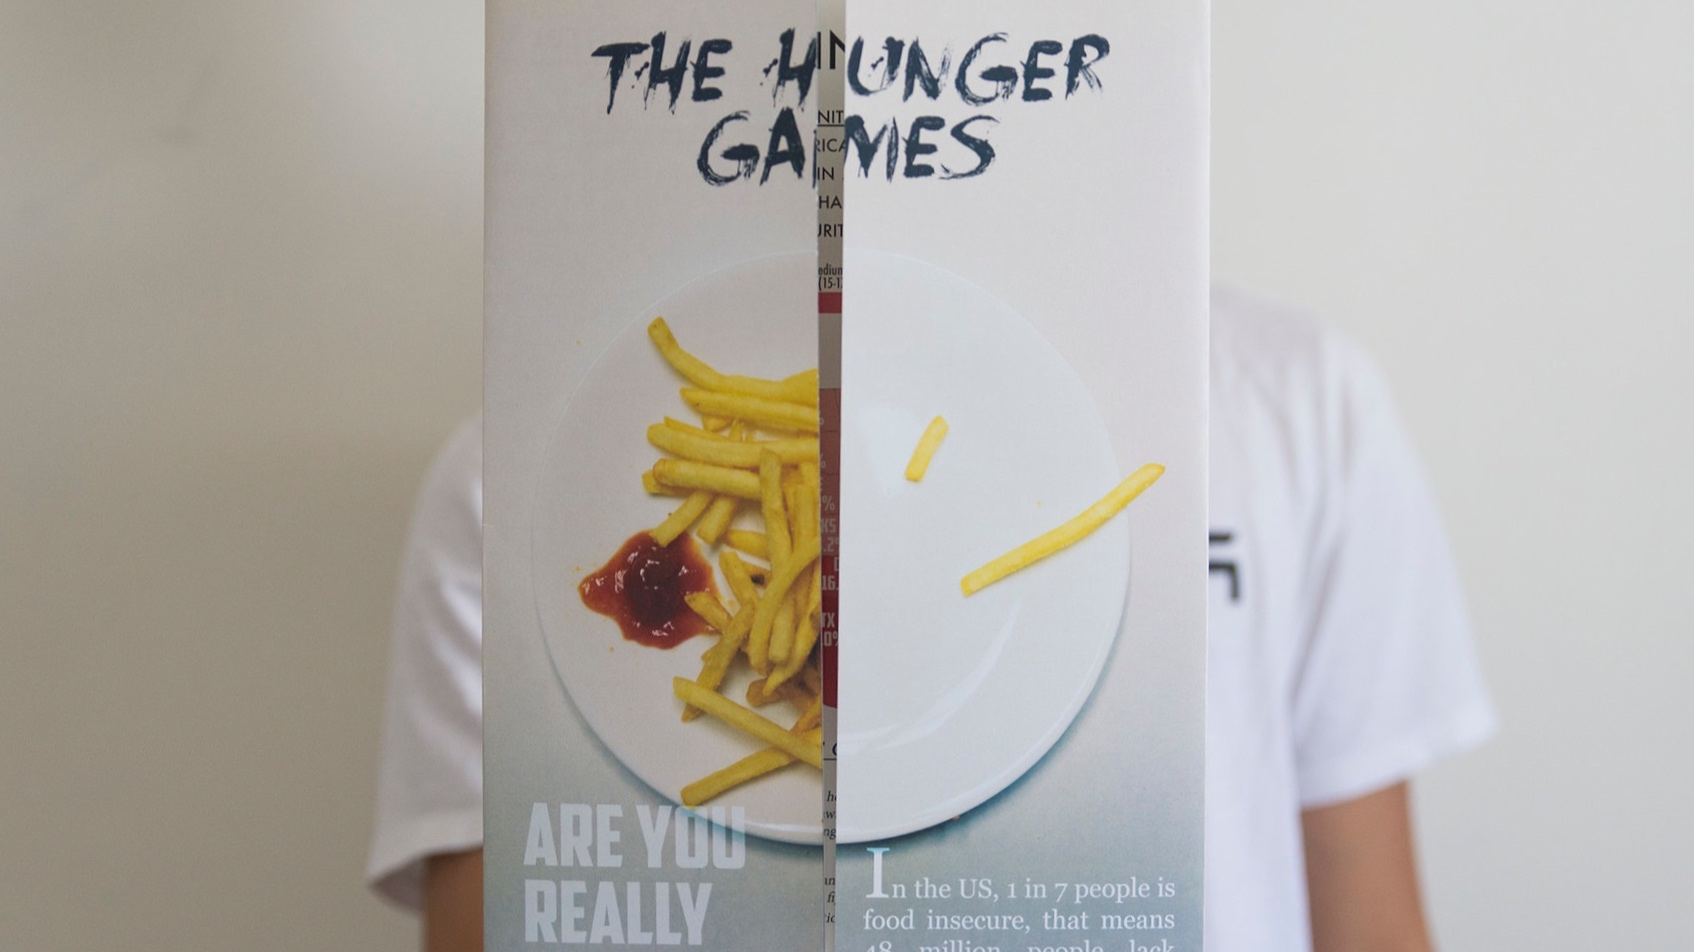 Hunger in the us campaign - A campaign that raise the awareness of food inequality in the US.